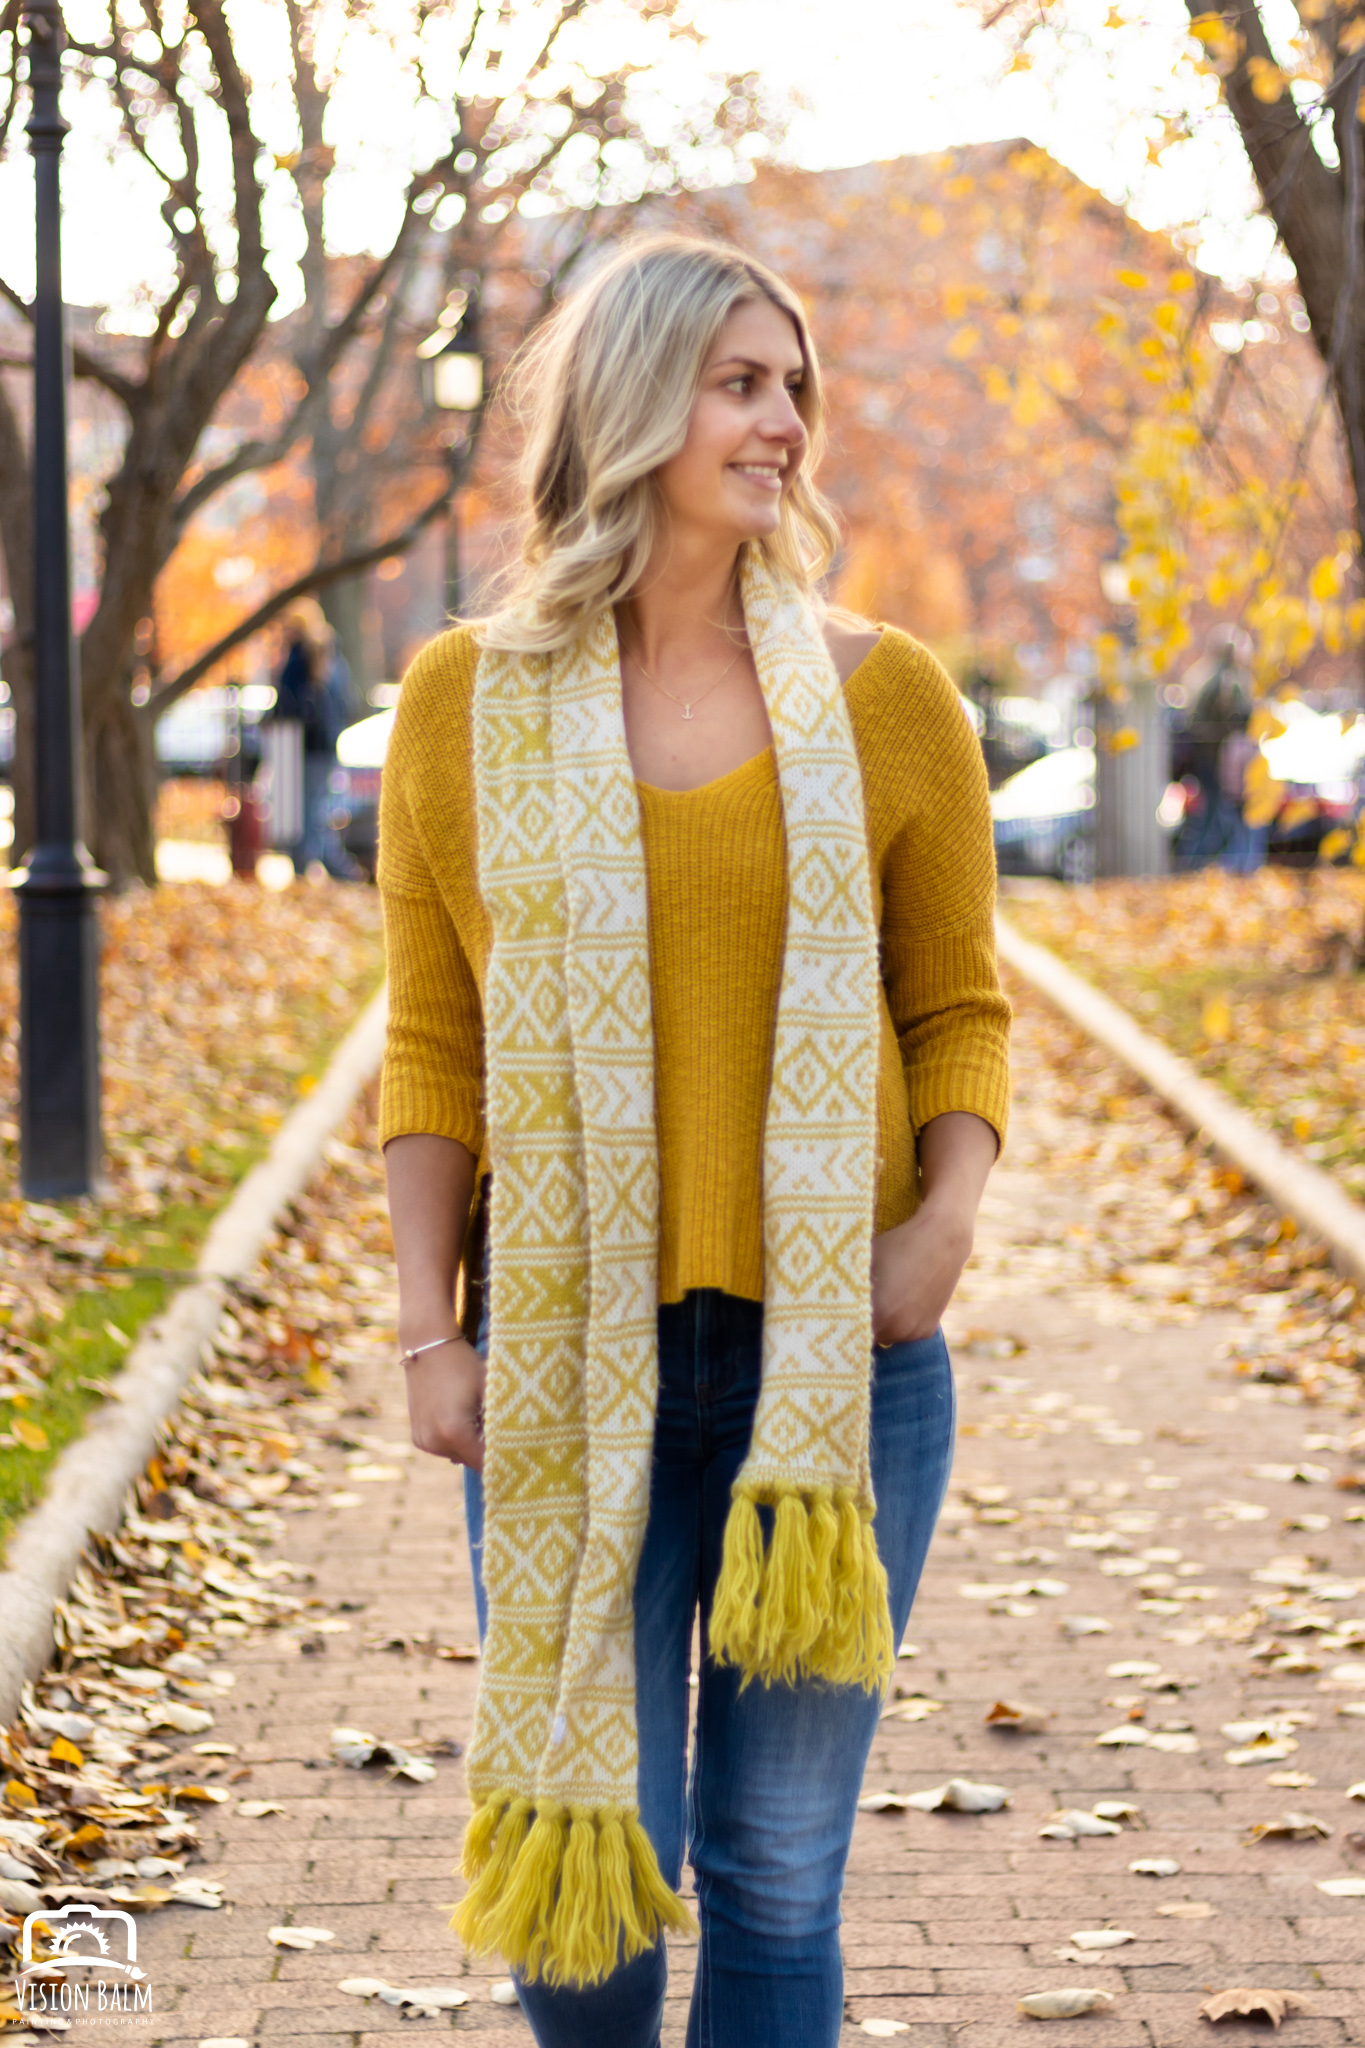 Professional fall portrait photography of model wearing a yellow sweater photographed by Vision Balm in Charleston, SC.